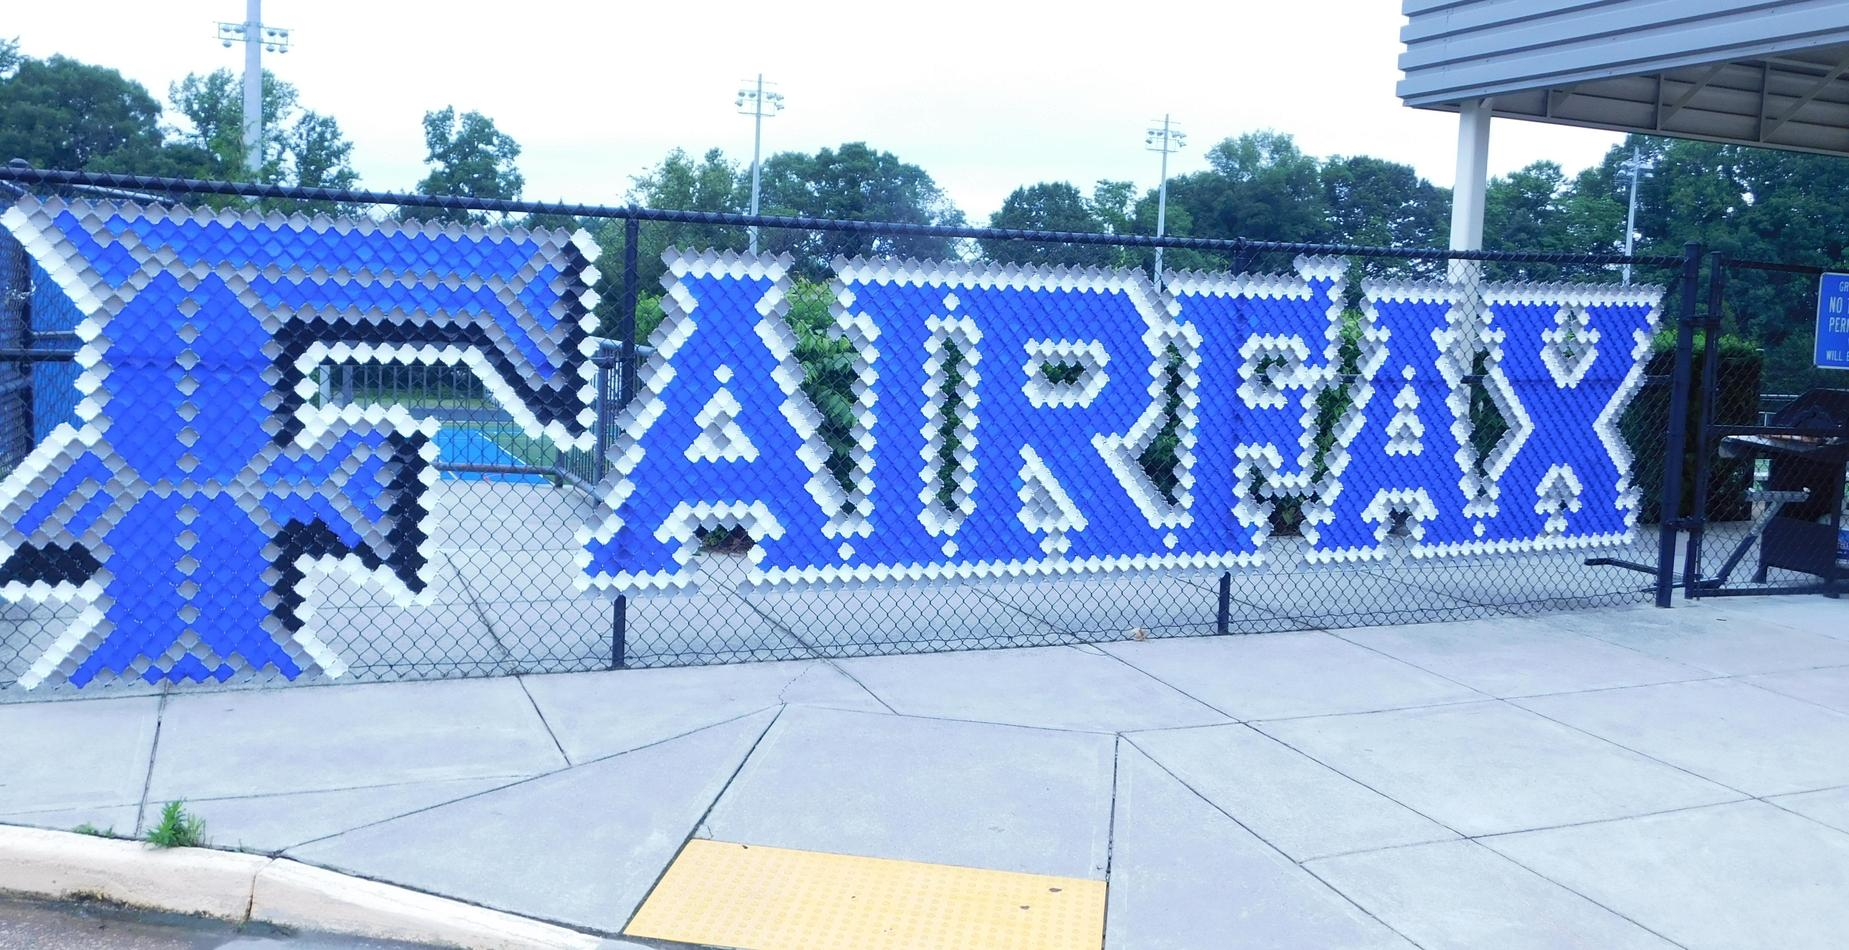 picture of cups spelling out Fairfax at the high school